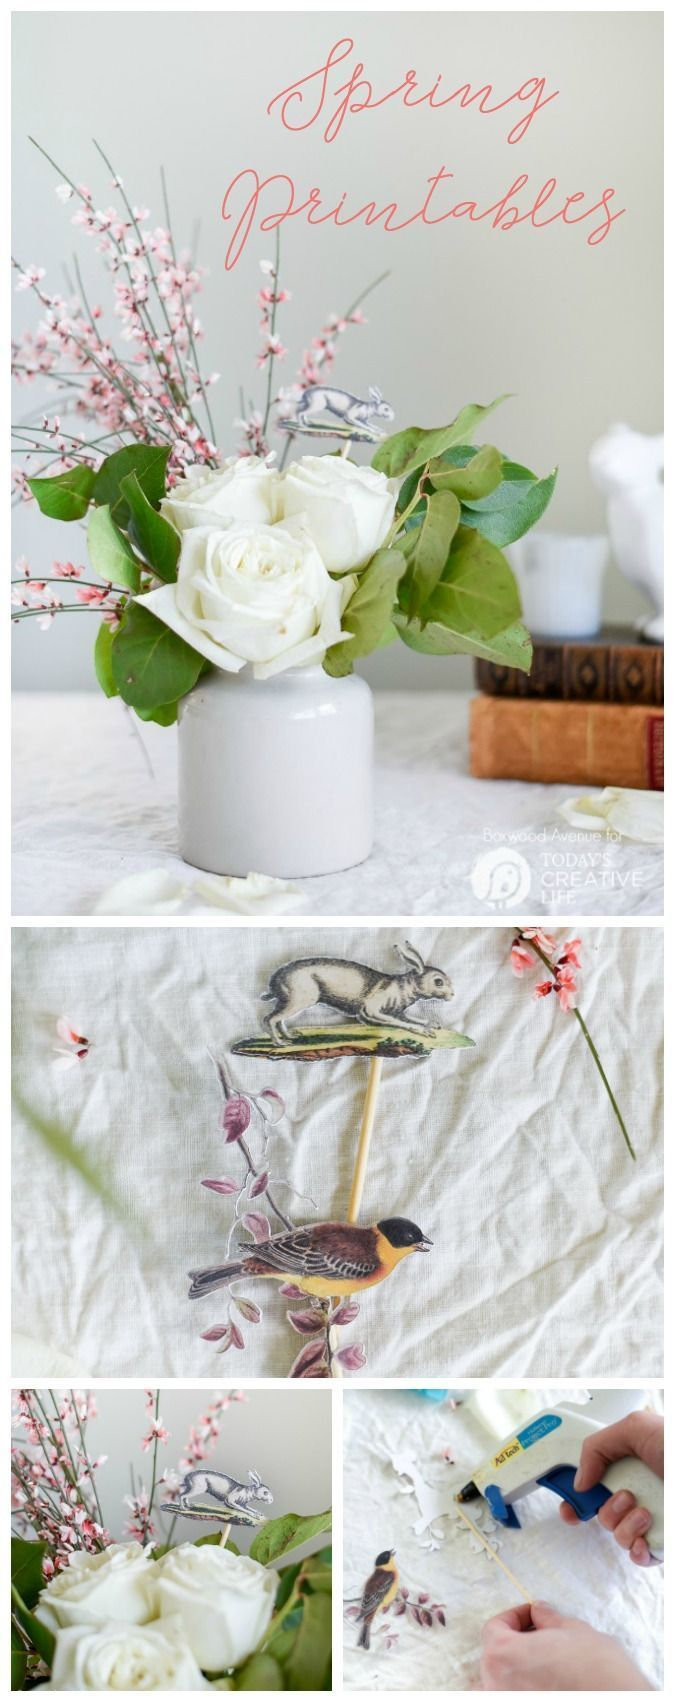 630 best Home | DIY & Decor images on Pinterest | Craft ideas ...